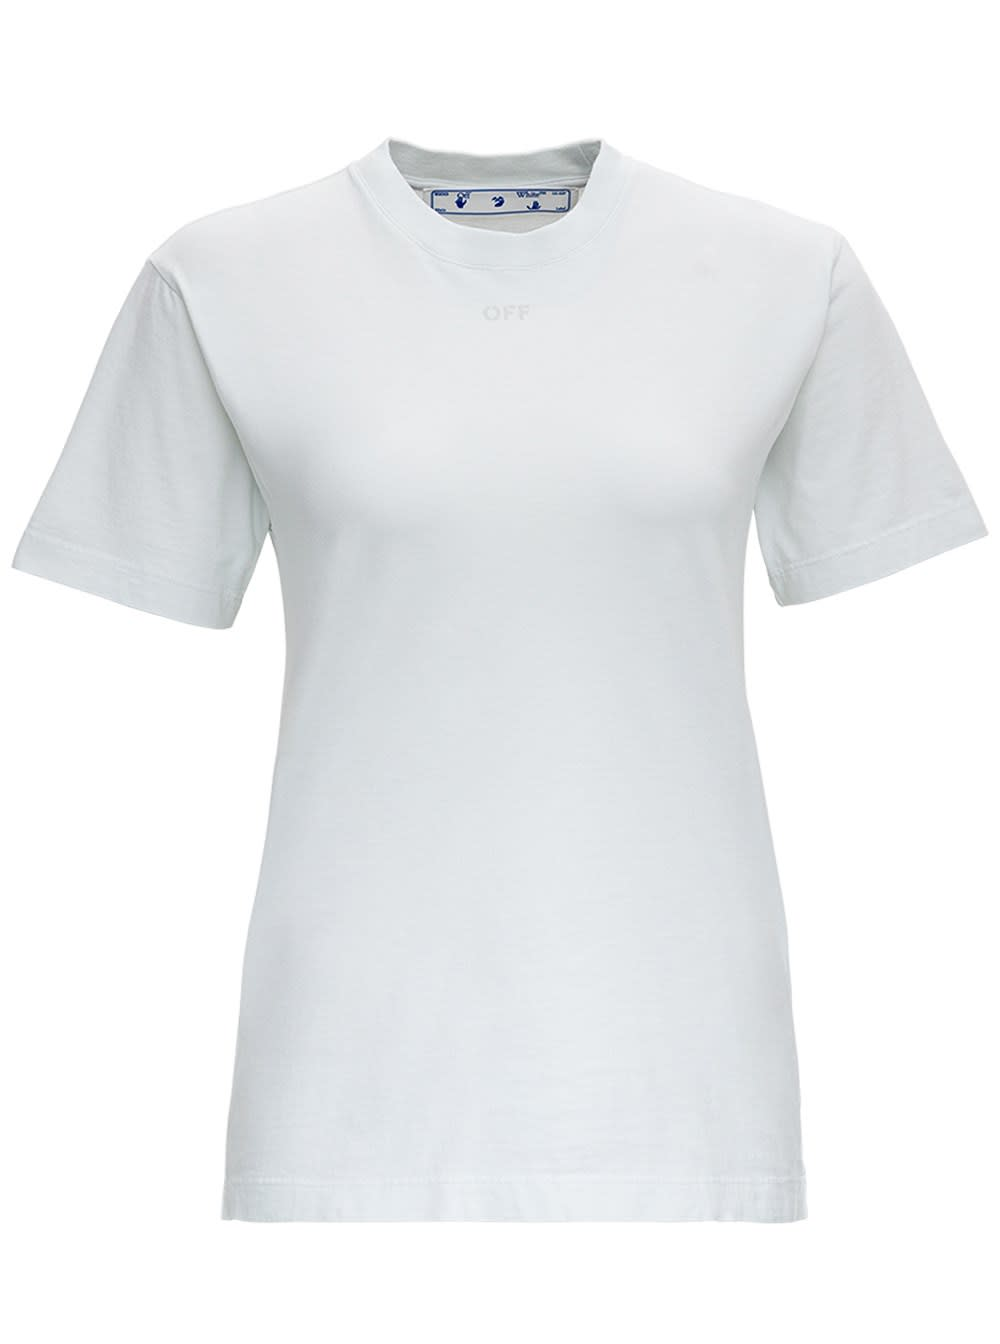 Off-White ARROWS T-SHIRT IN WHITE JERSEY